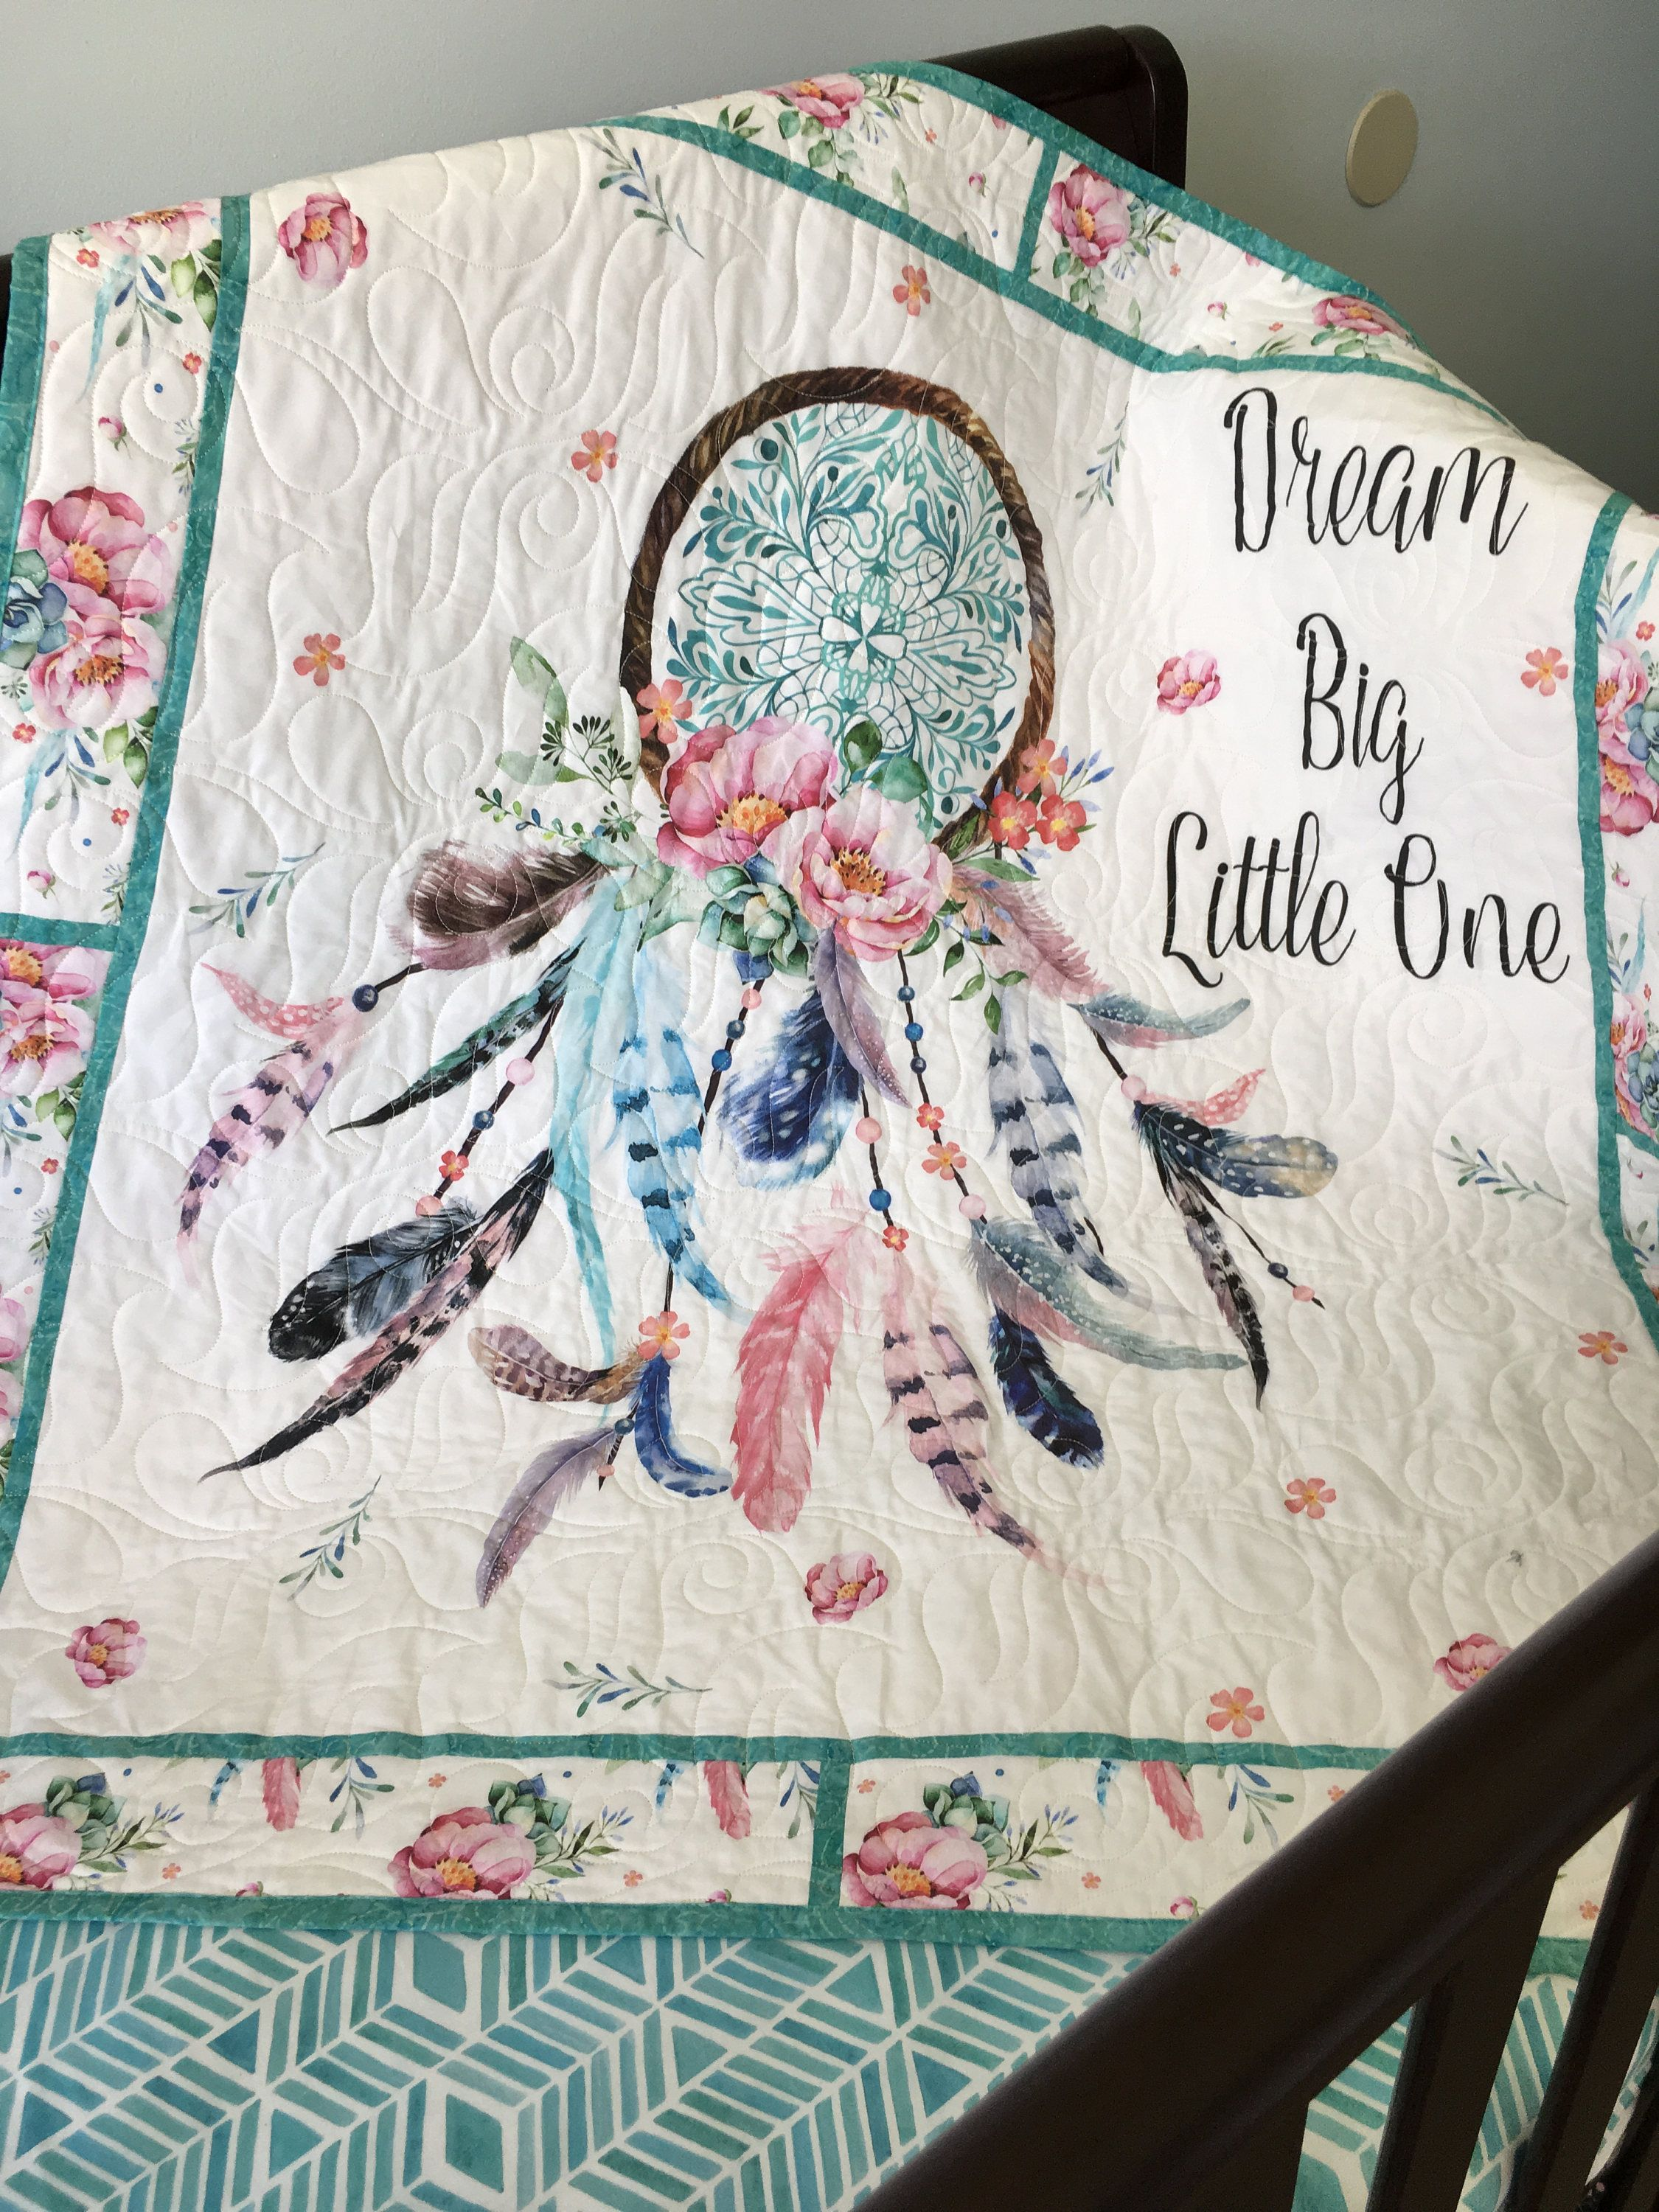 Dream Catcher Crib Bedding Pleasing Dream Big Little One Dream Catcher Baby Girl Nursery Aqua Pink 2018